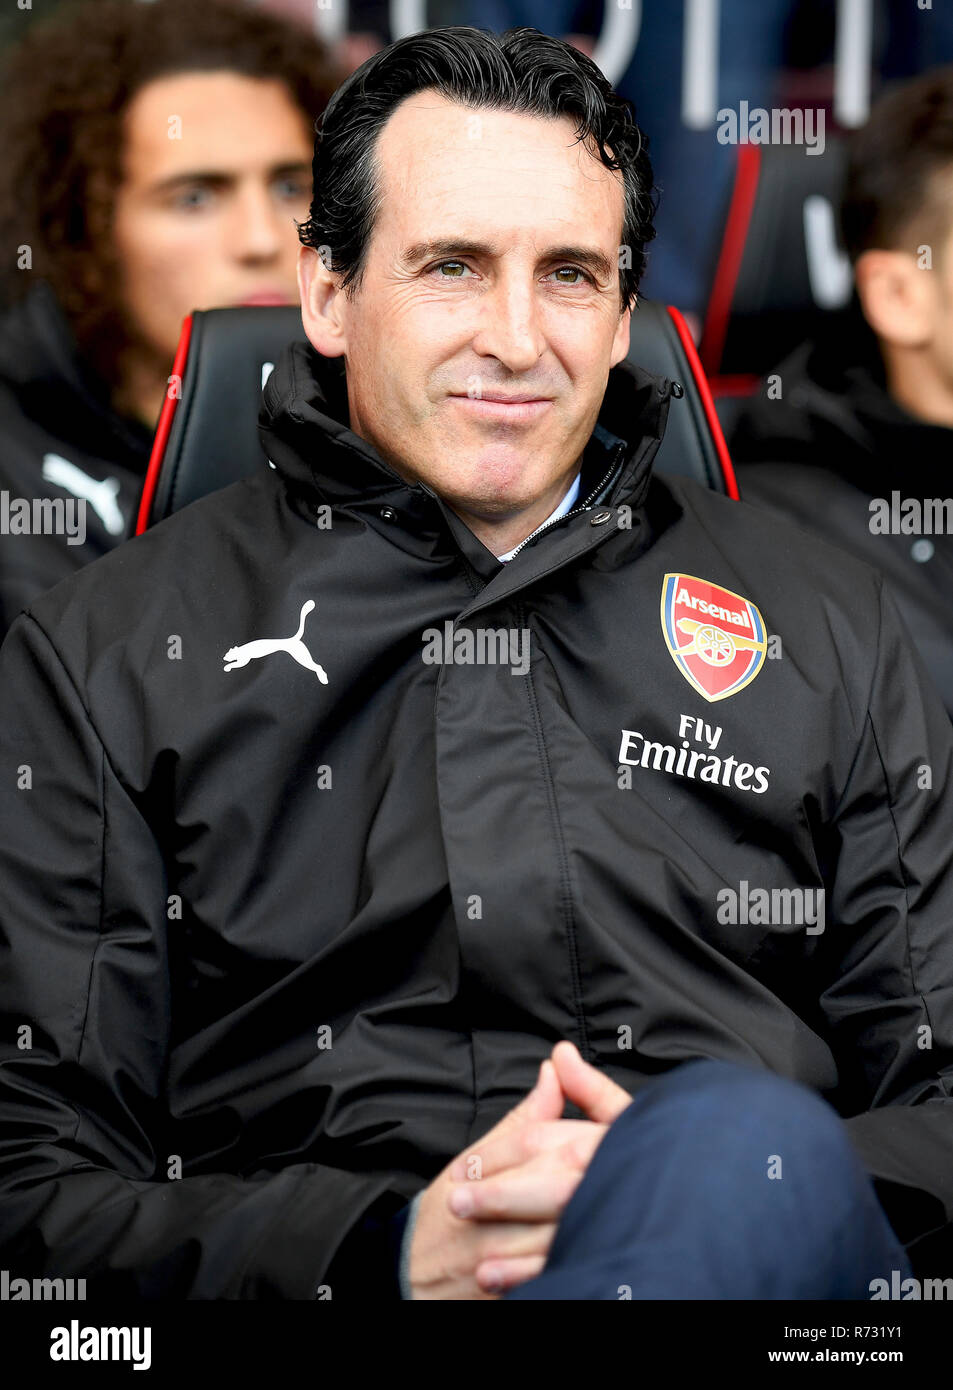 Manager of Arsenal, Unai Emery - AFC Bournemouth v Arsenal, Premier League, Vitality Stadium, Bournemouth - 25th November 2018  Editorial Use Only - D - Stock Image